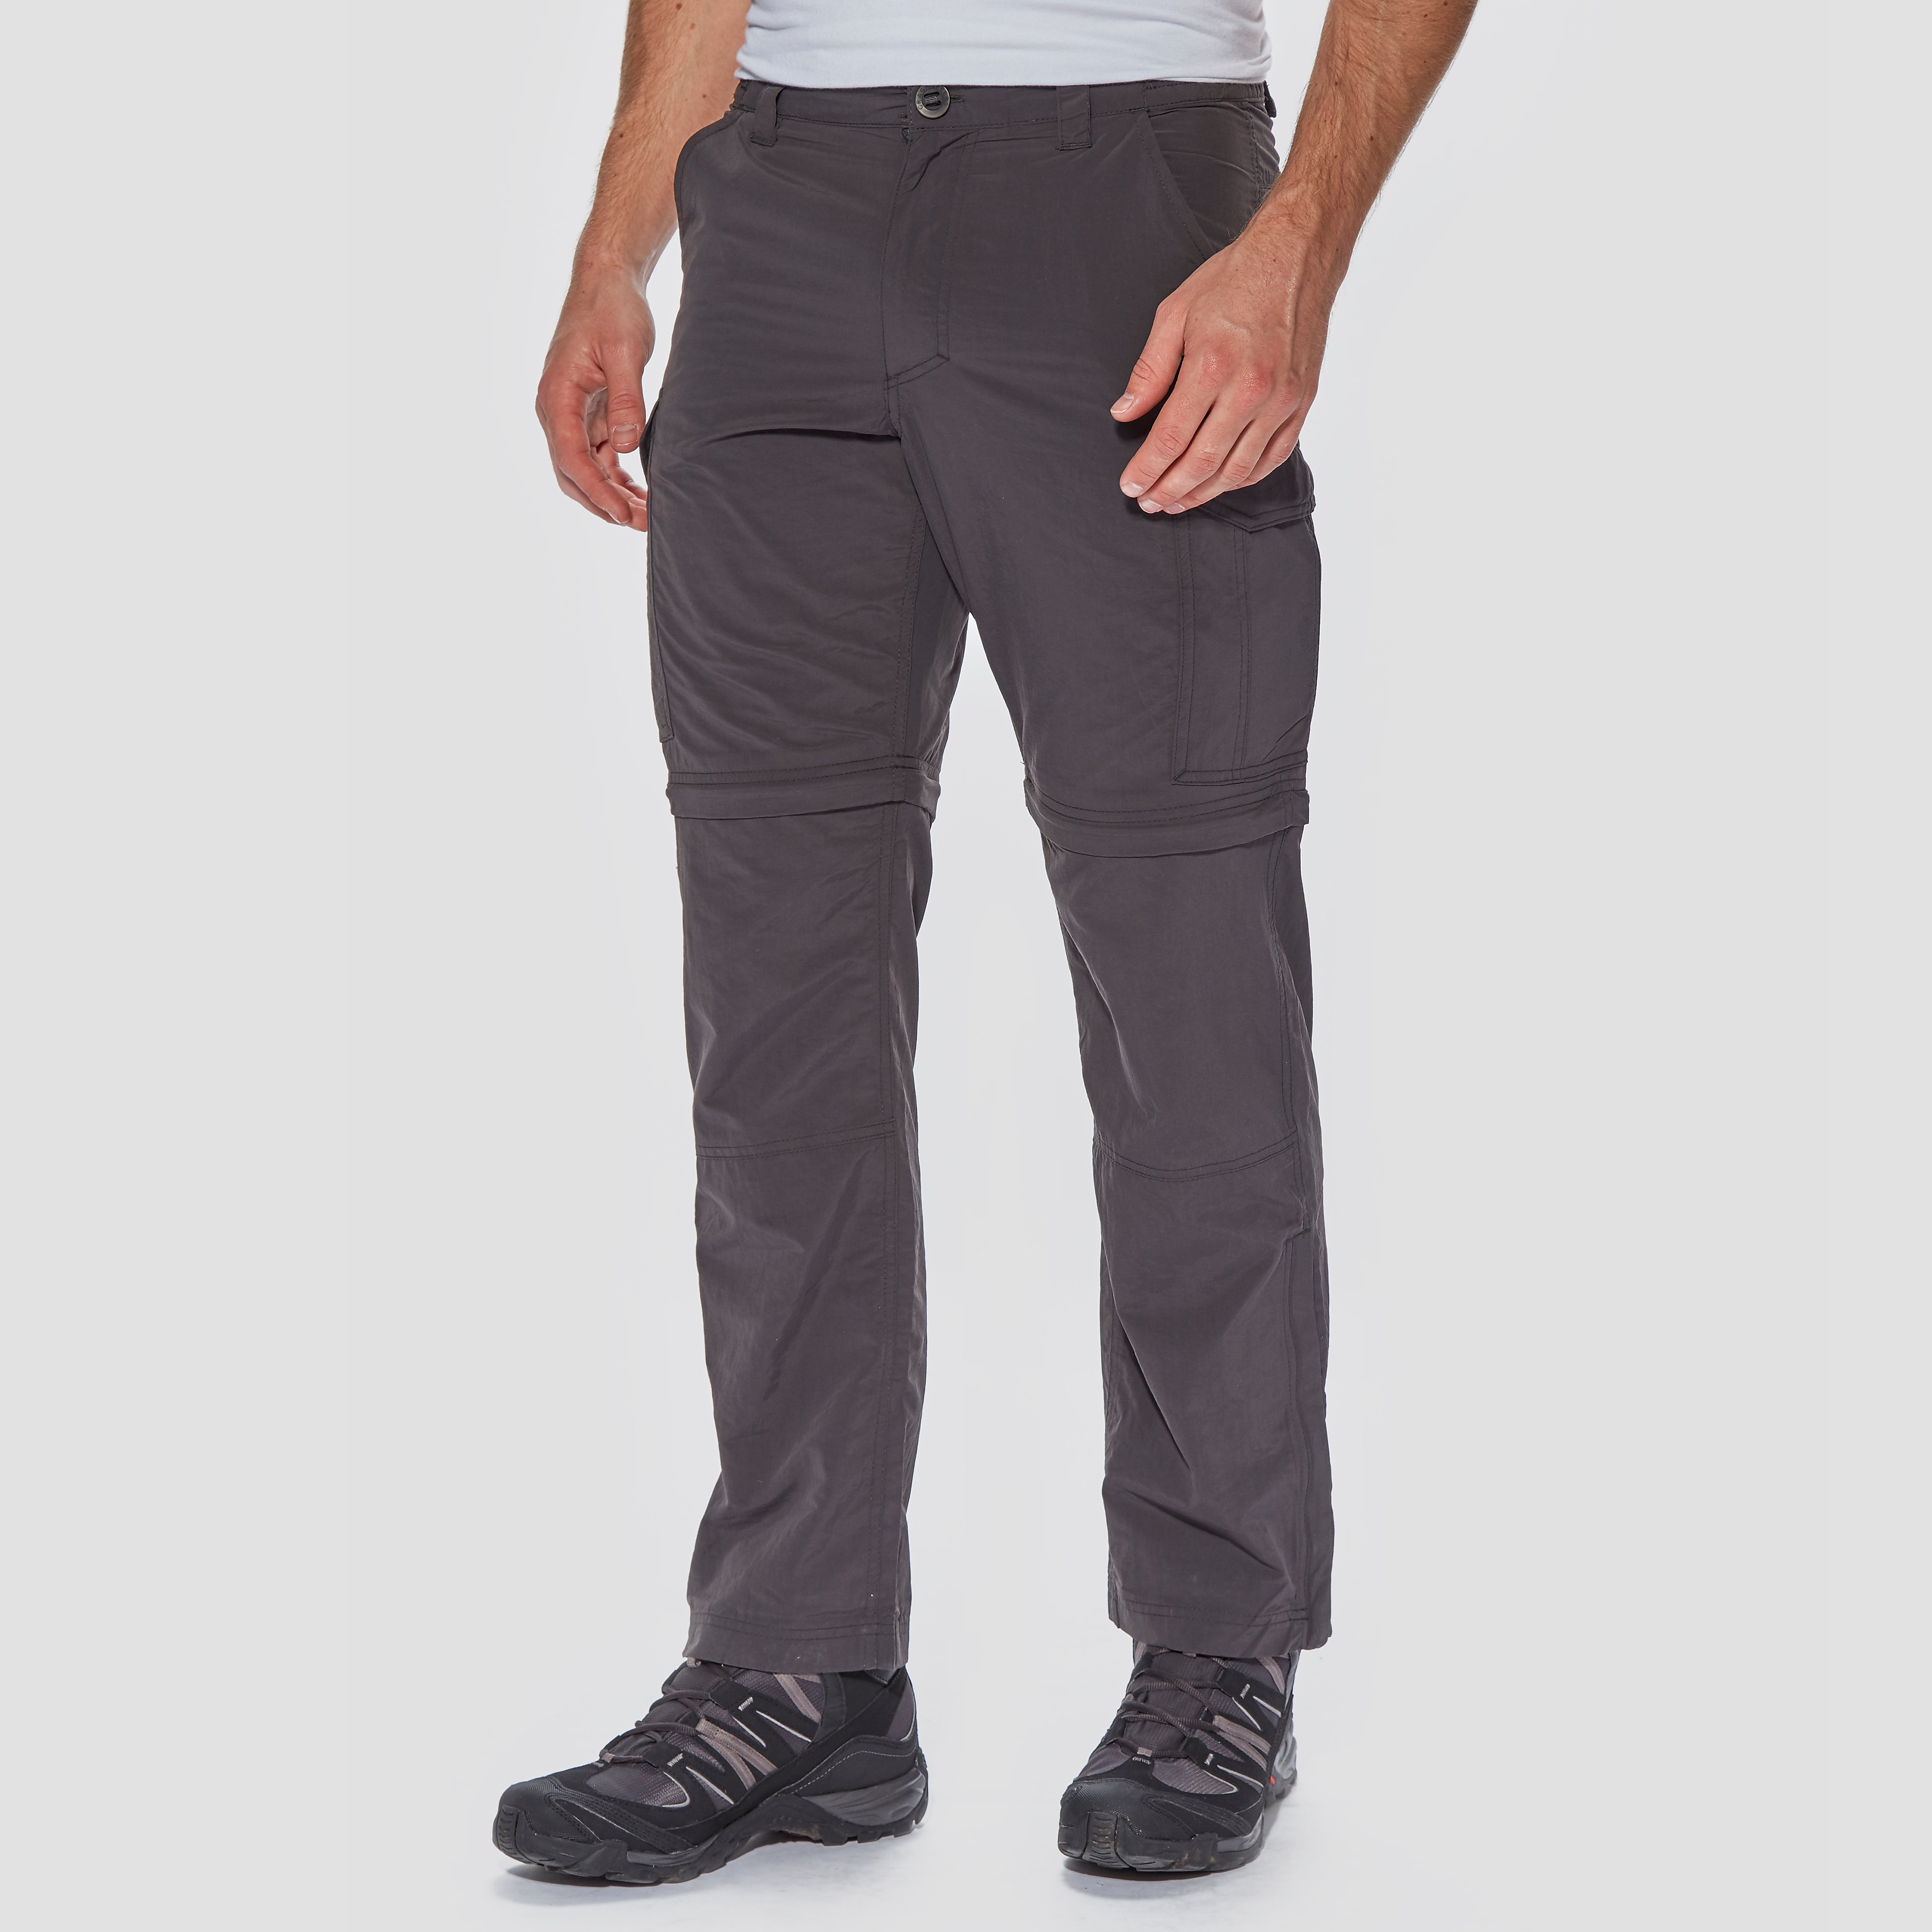 CRAGHOPPERS NosiLife Men's Trousers